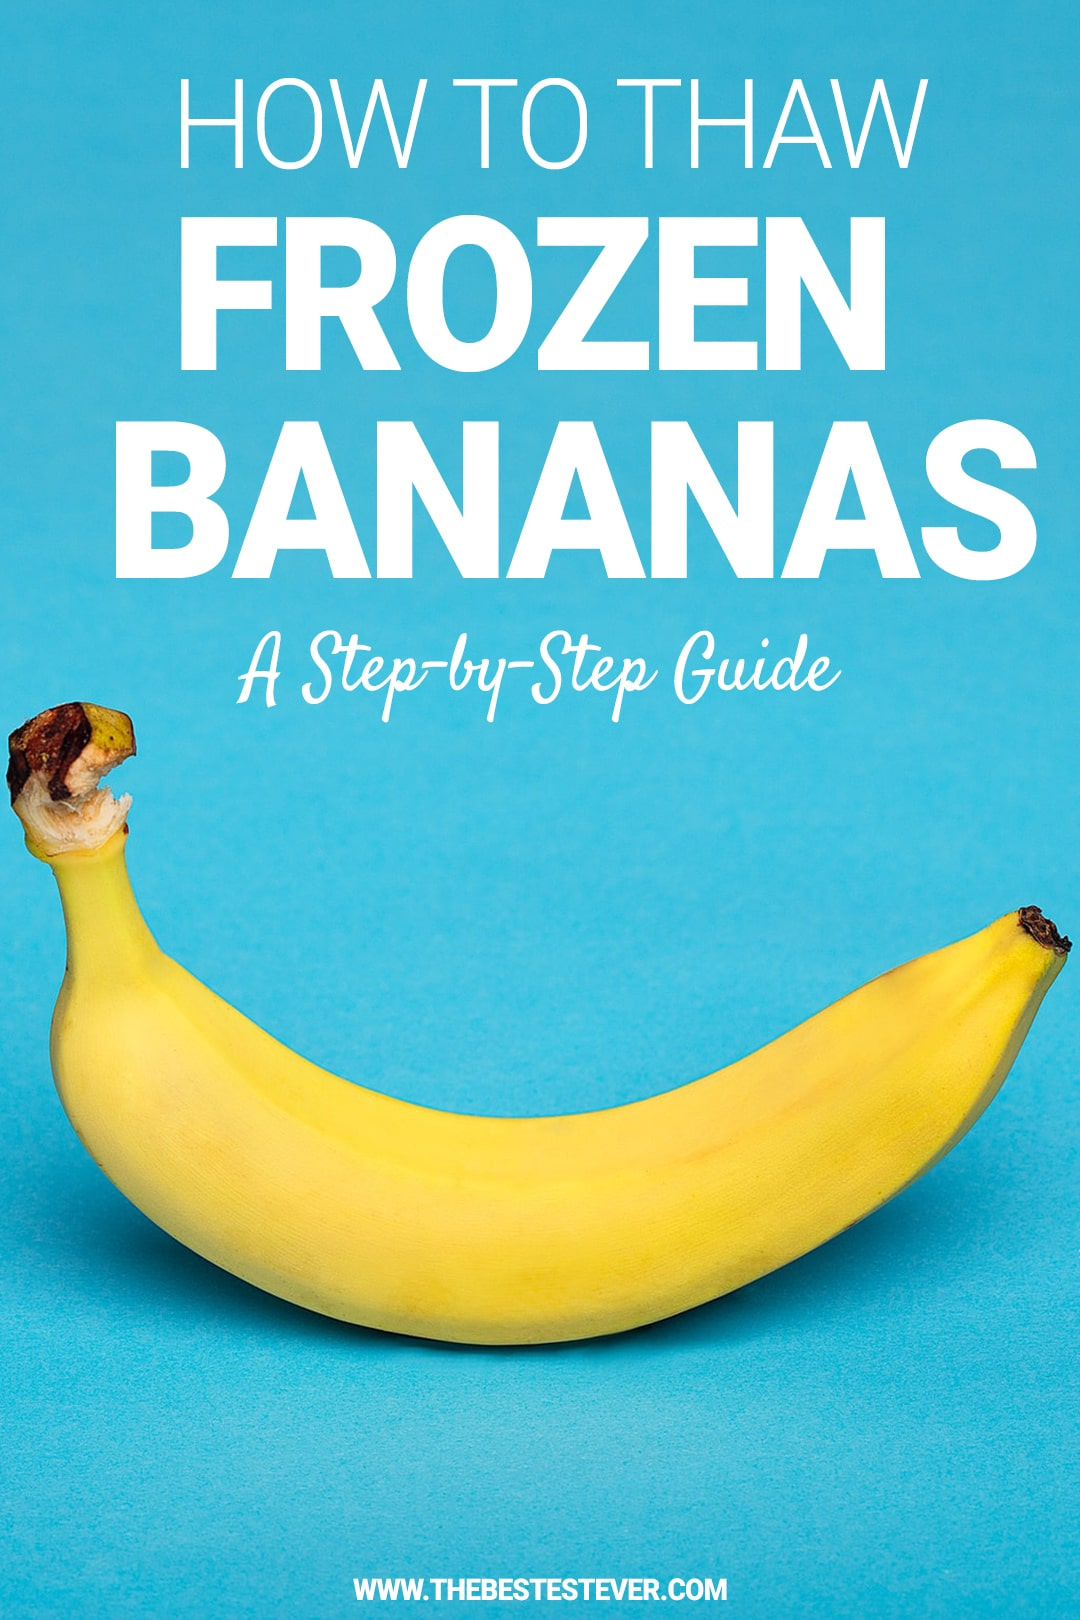 How to Thaw Frozen Bananas Quickly: Best Methods to Use